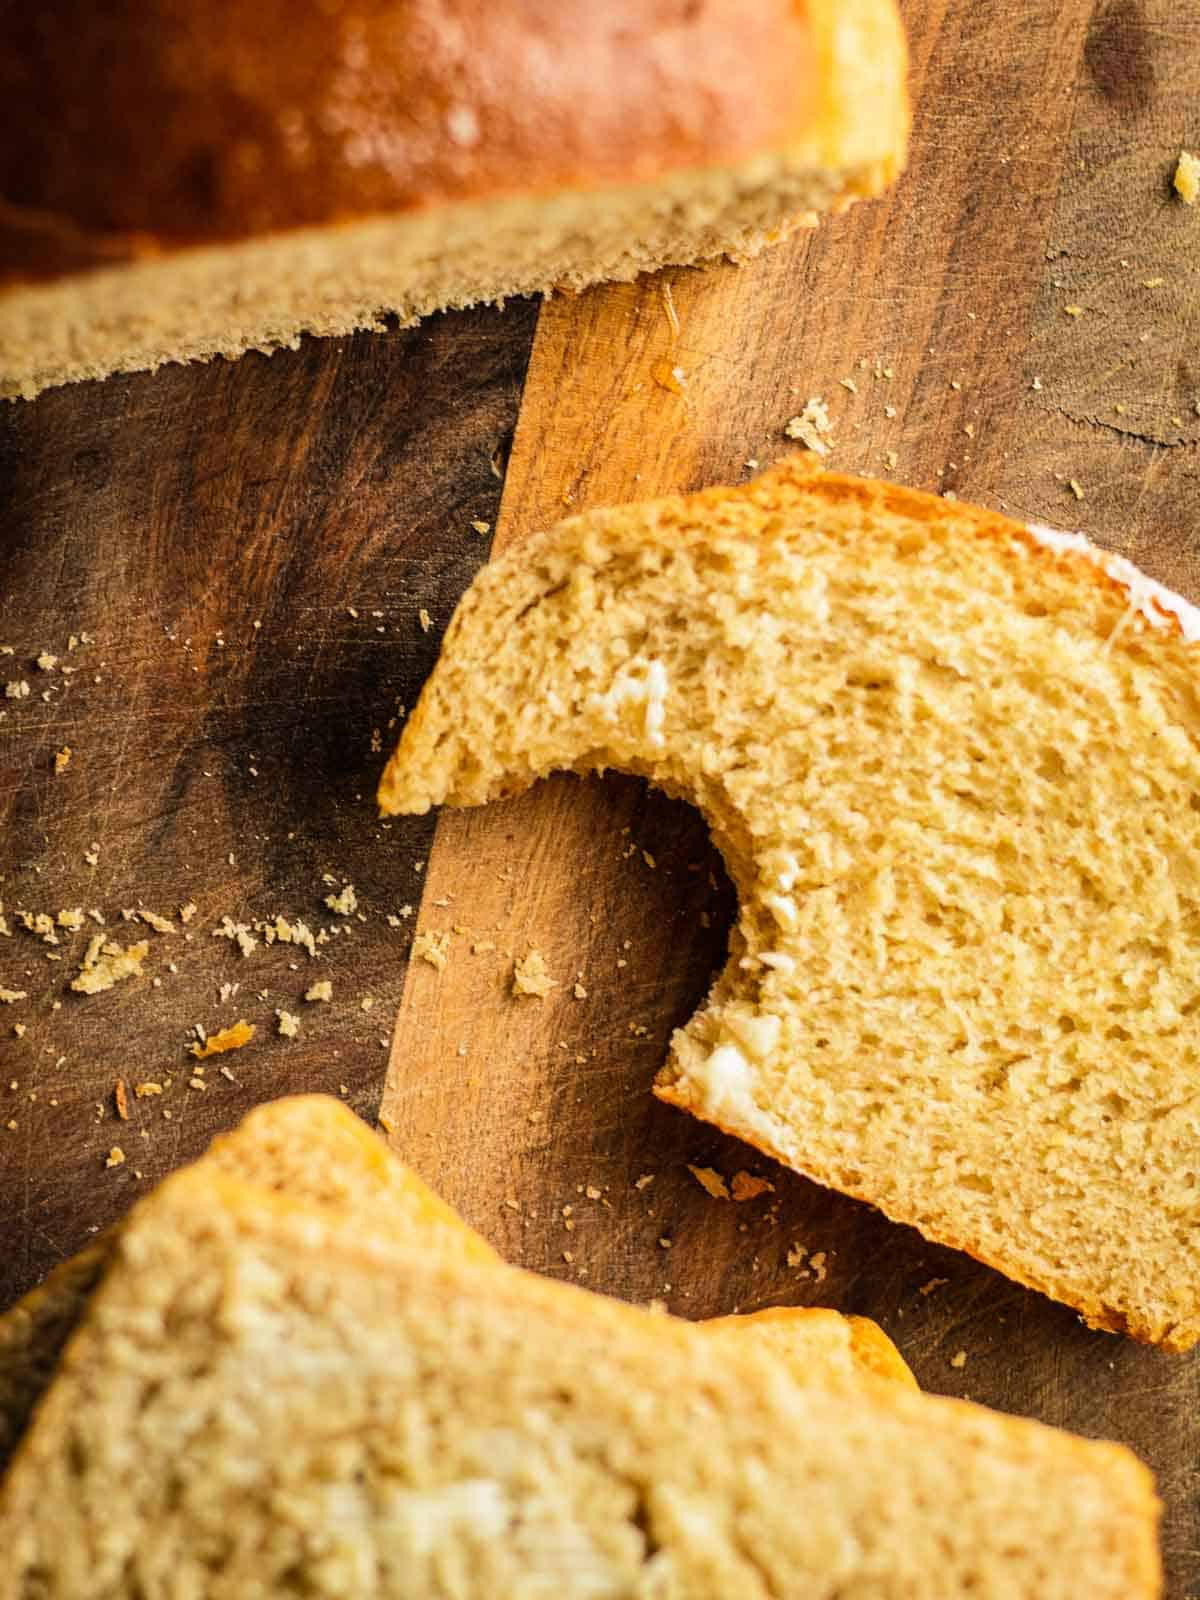 slice of homemade bread on a wooden cutting board with a bite taken from it